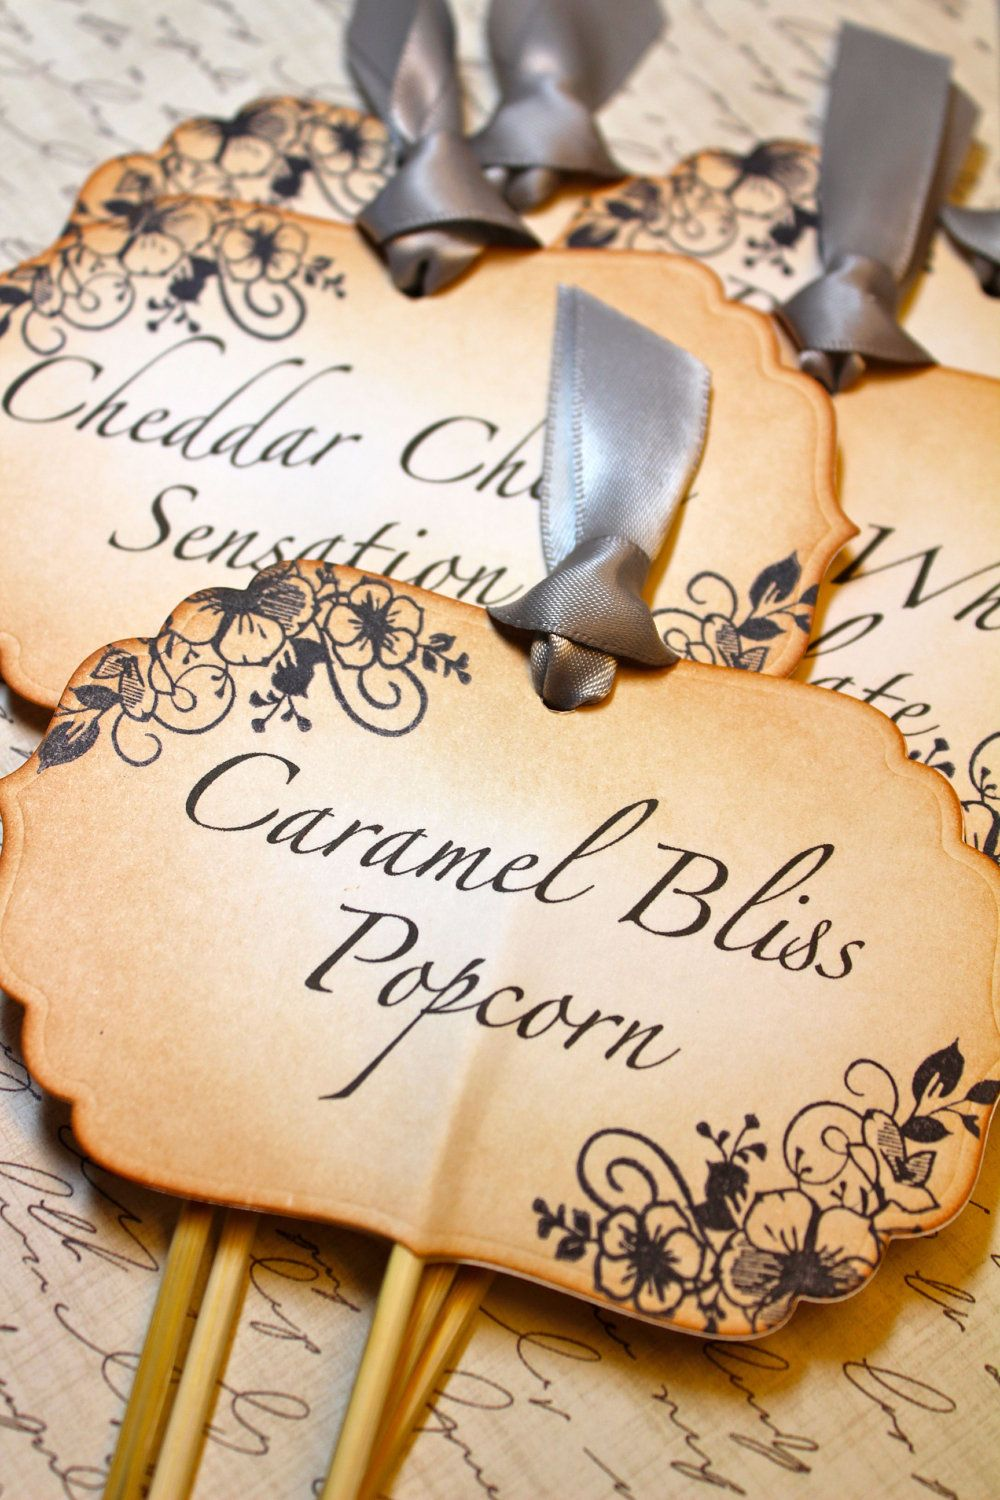 Vintage Inspired Candy Buffet Labels on Skewers - | Event Treats ...